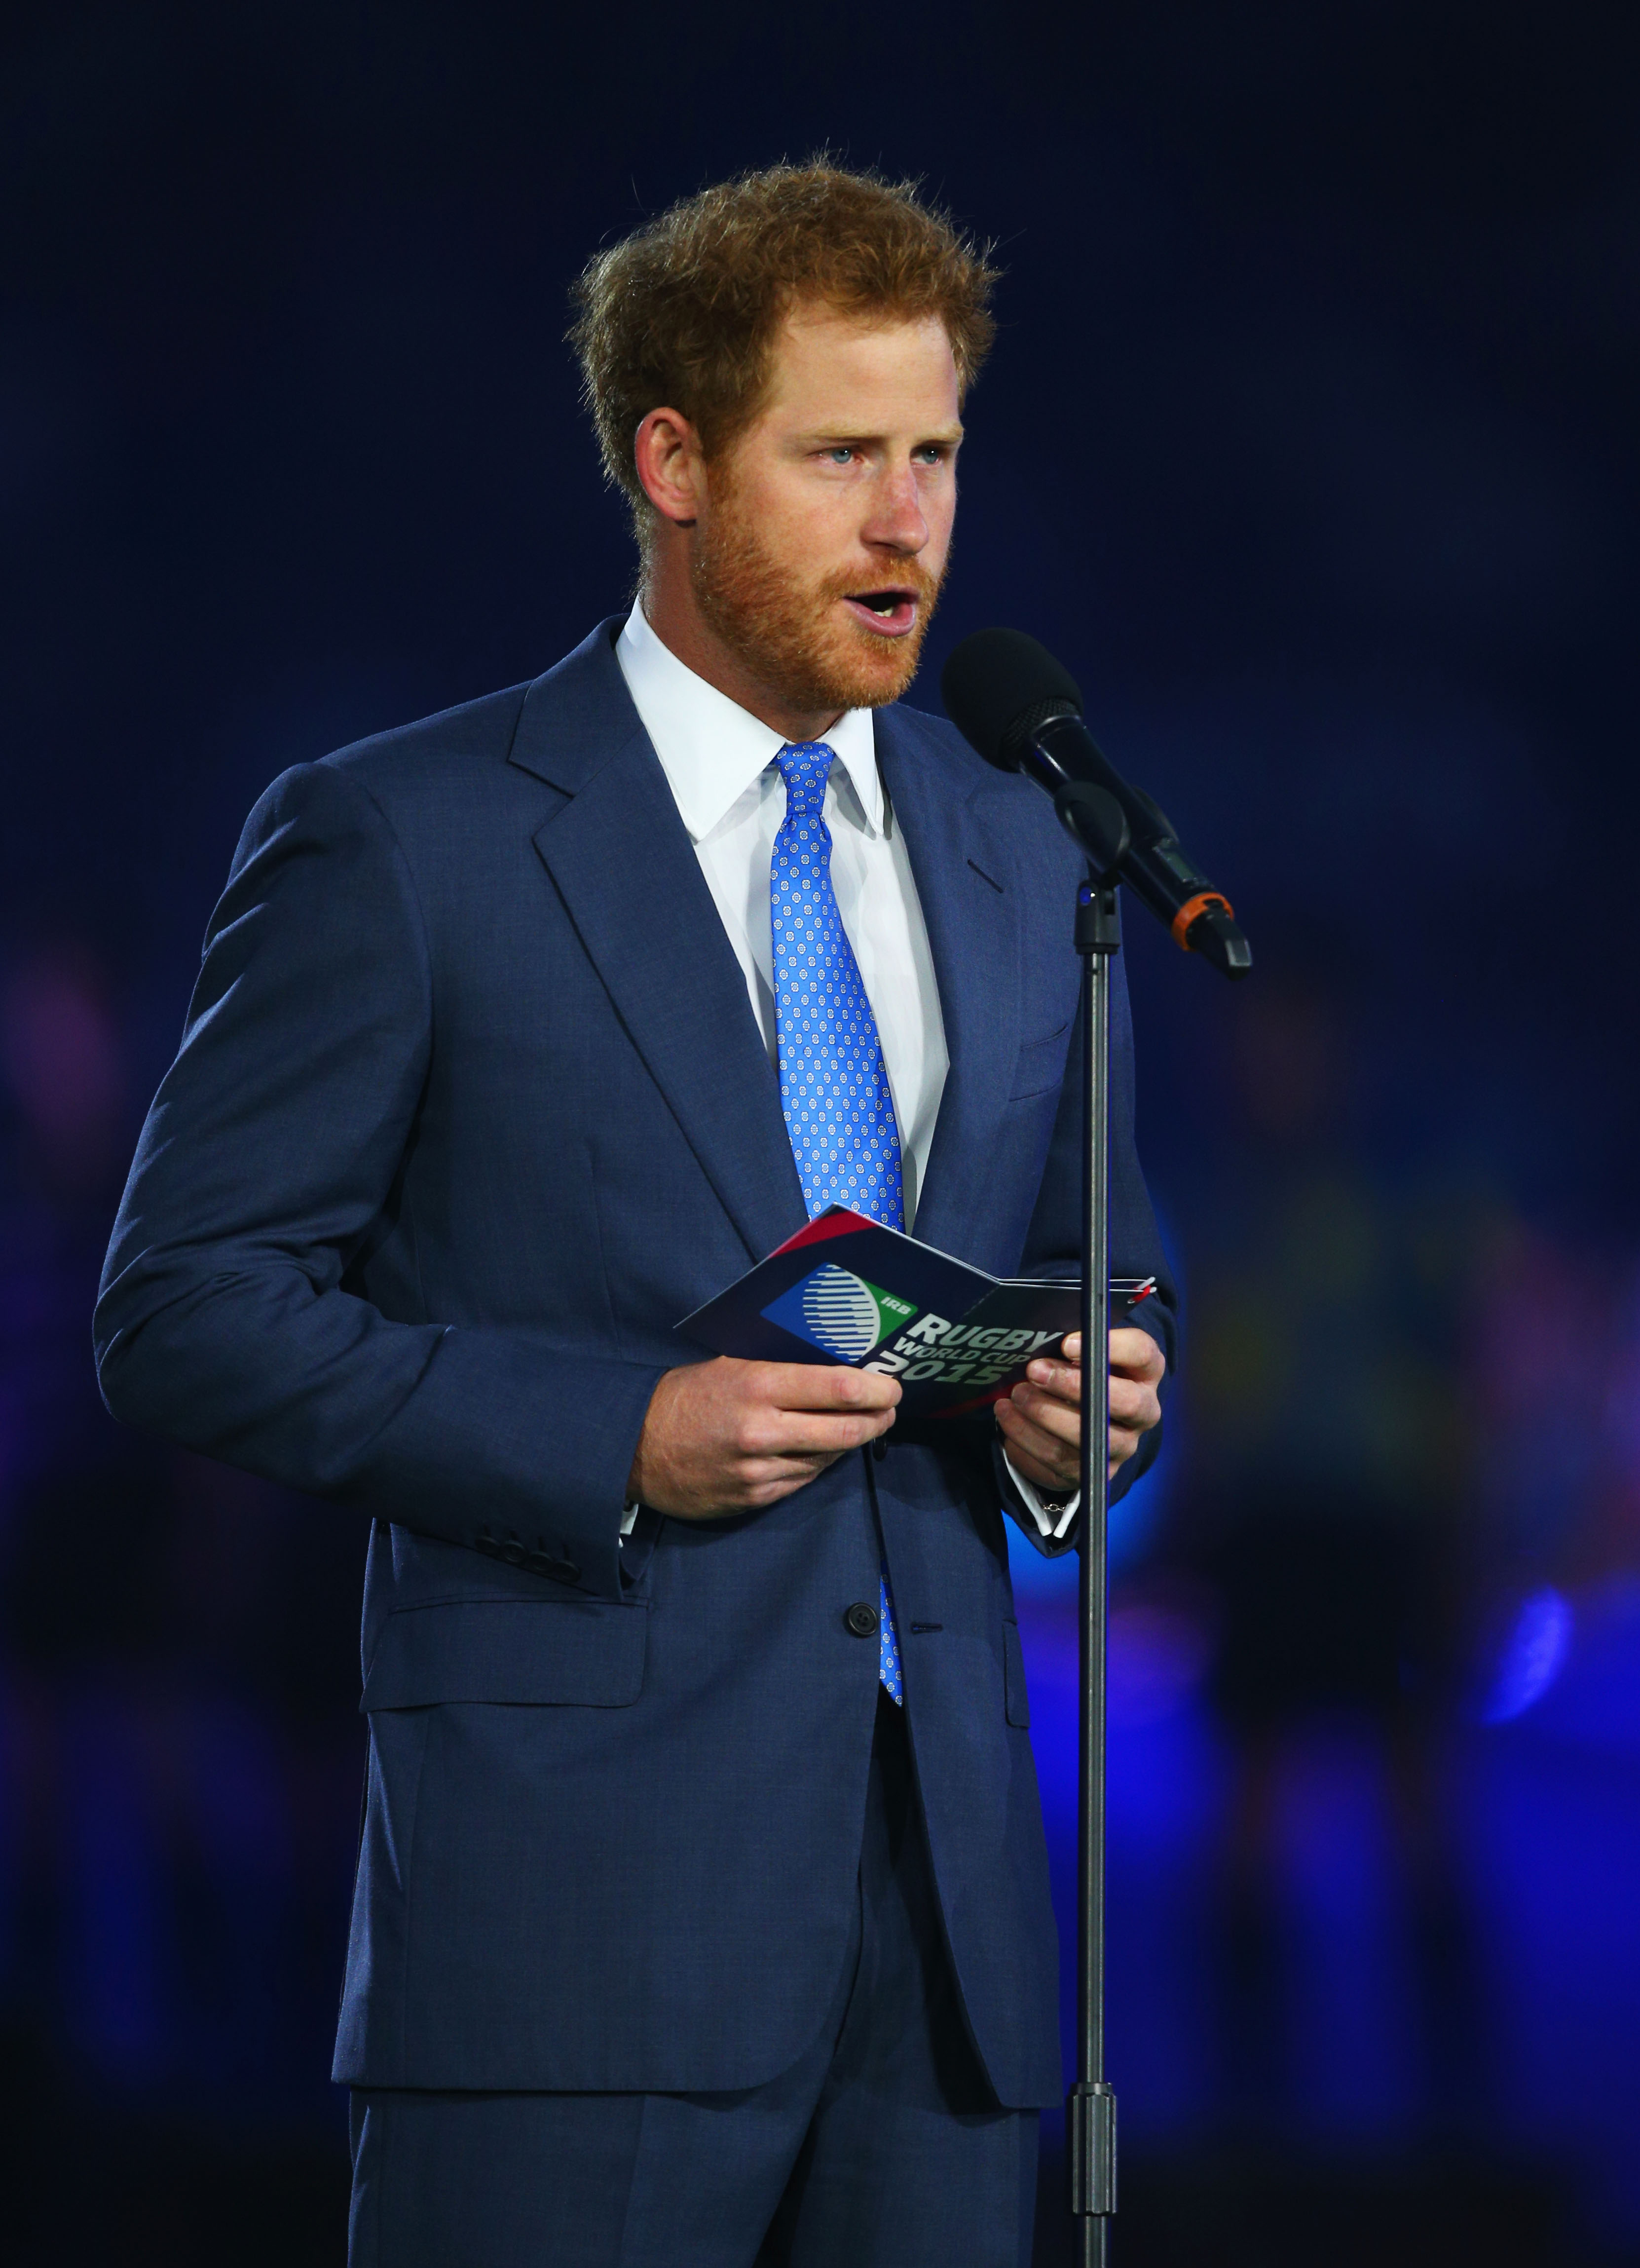 Kate Middleton Doesn't Know What's Going On With Prince Harry's Facial Hair Either